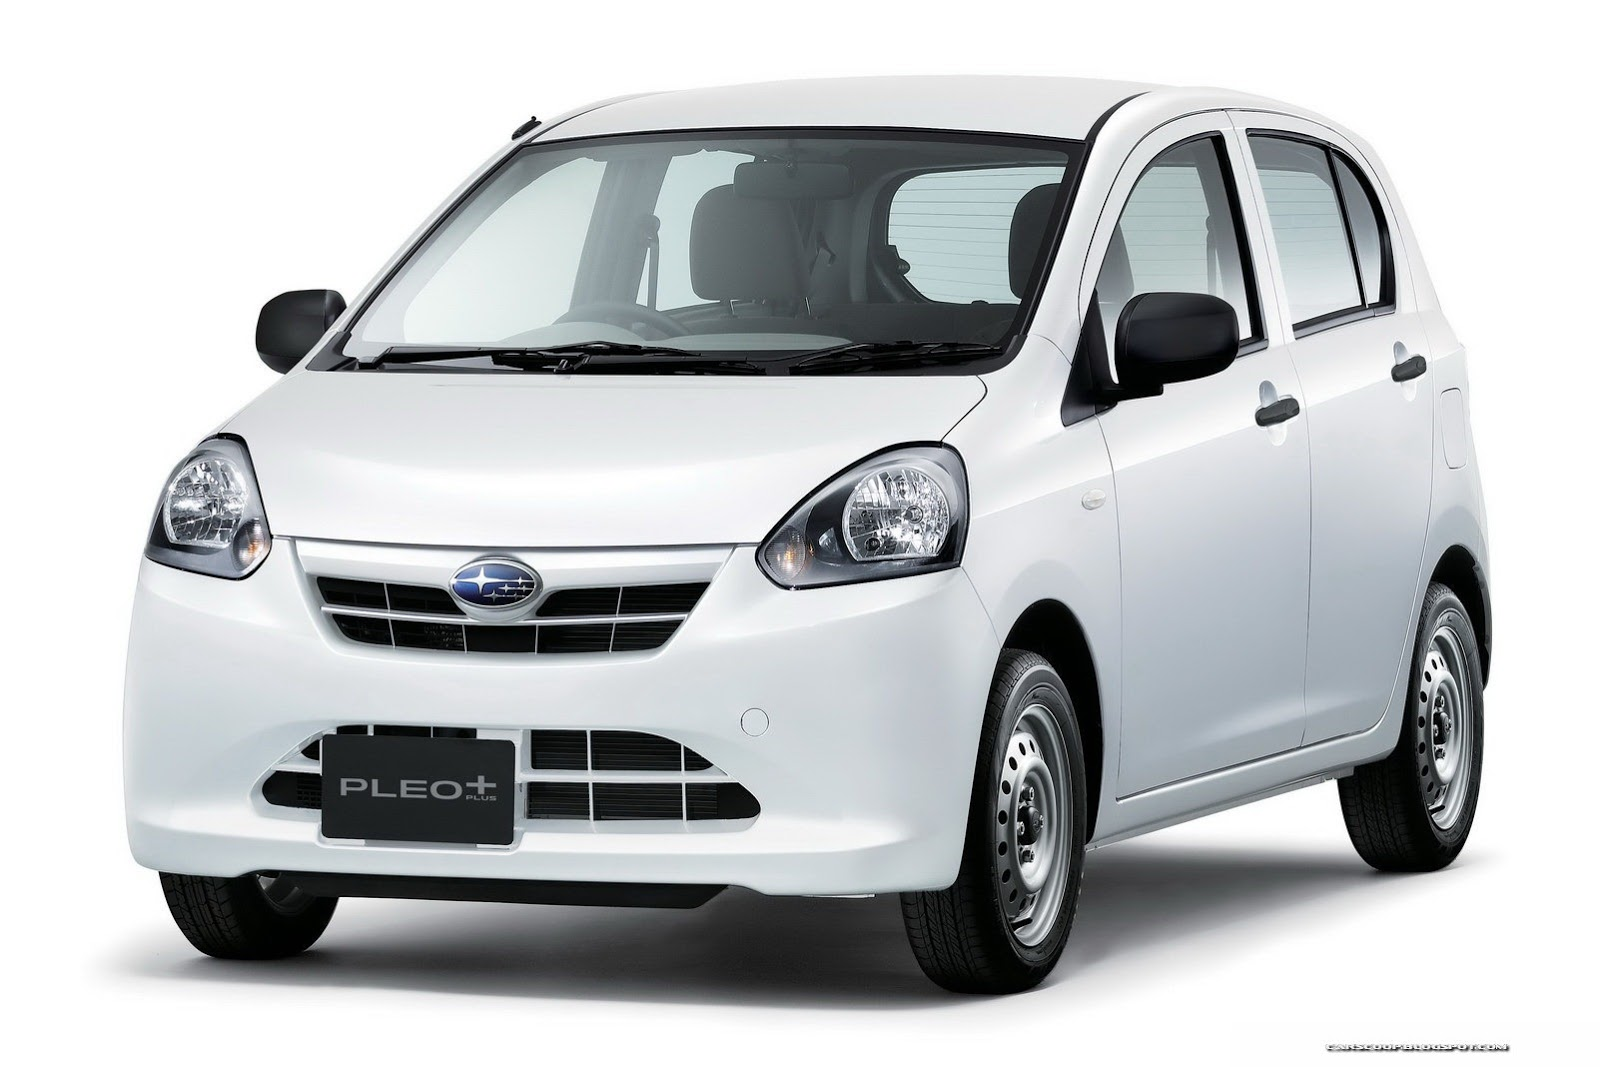 Subaru Pleo Plus hits the Japanese market